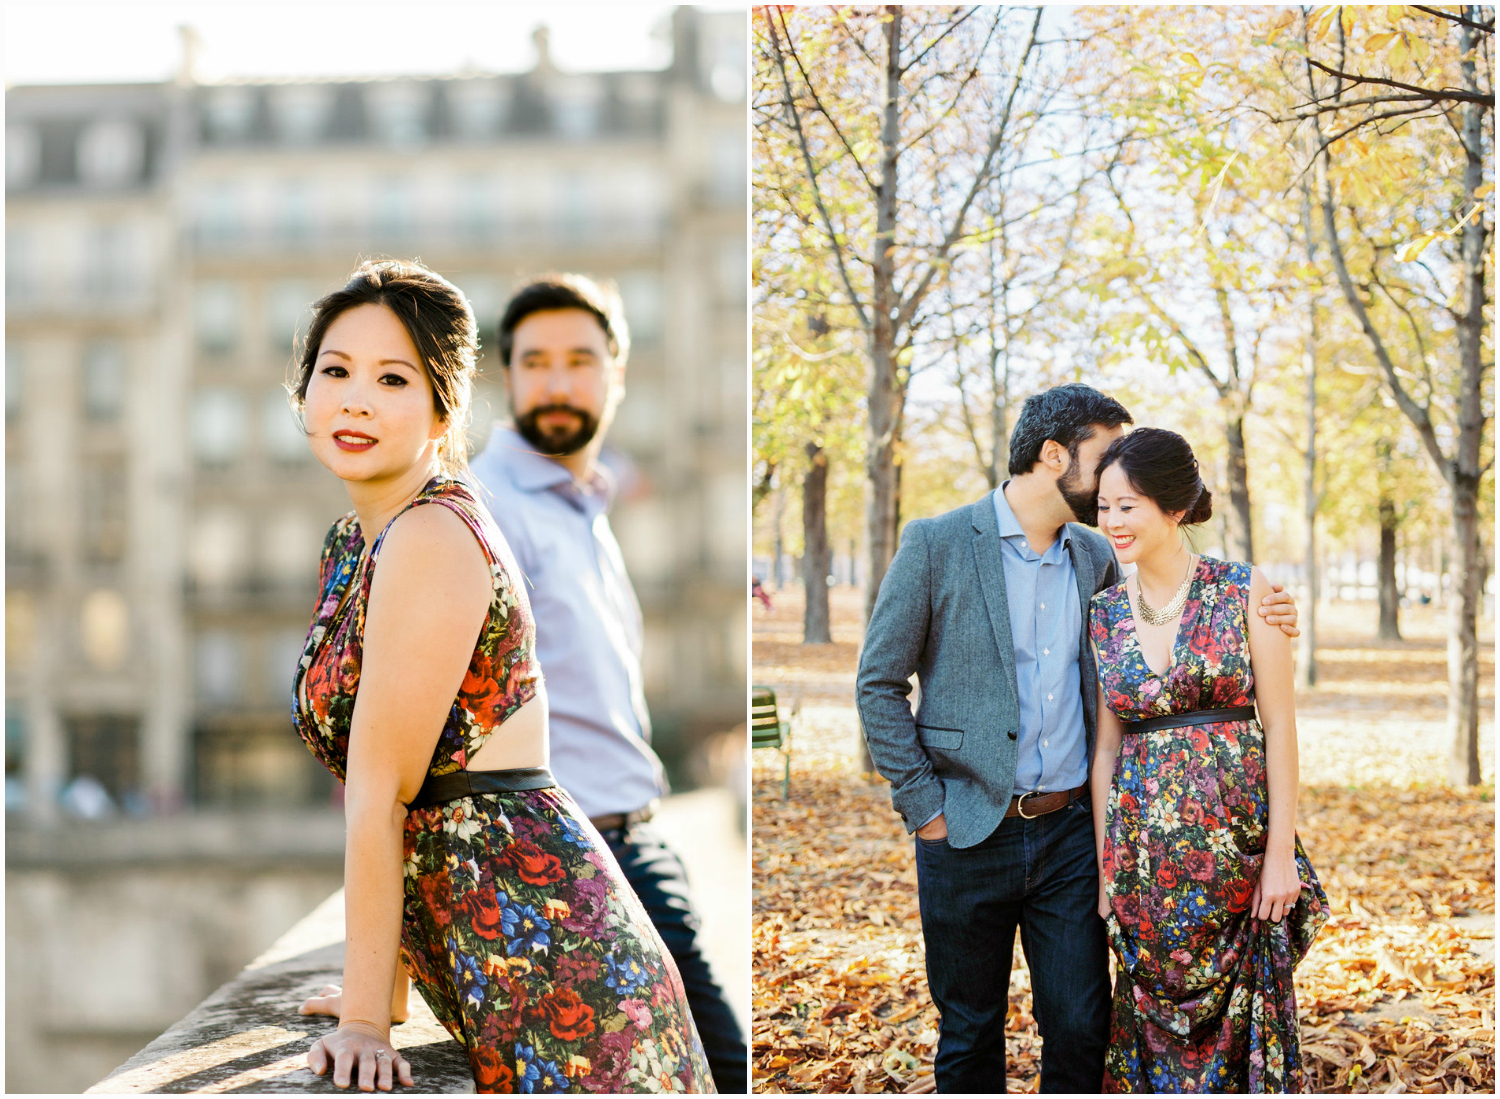 parisian_autumn_engagement_tuileries_garden6.jpg